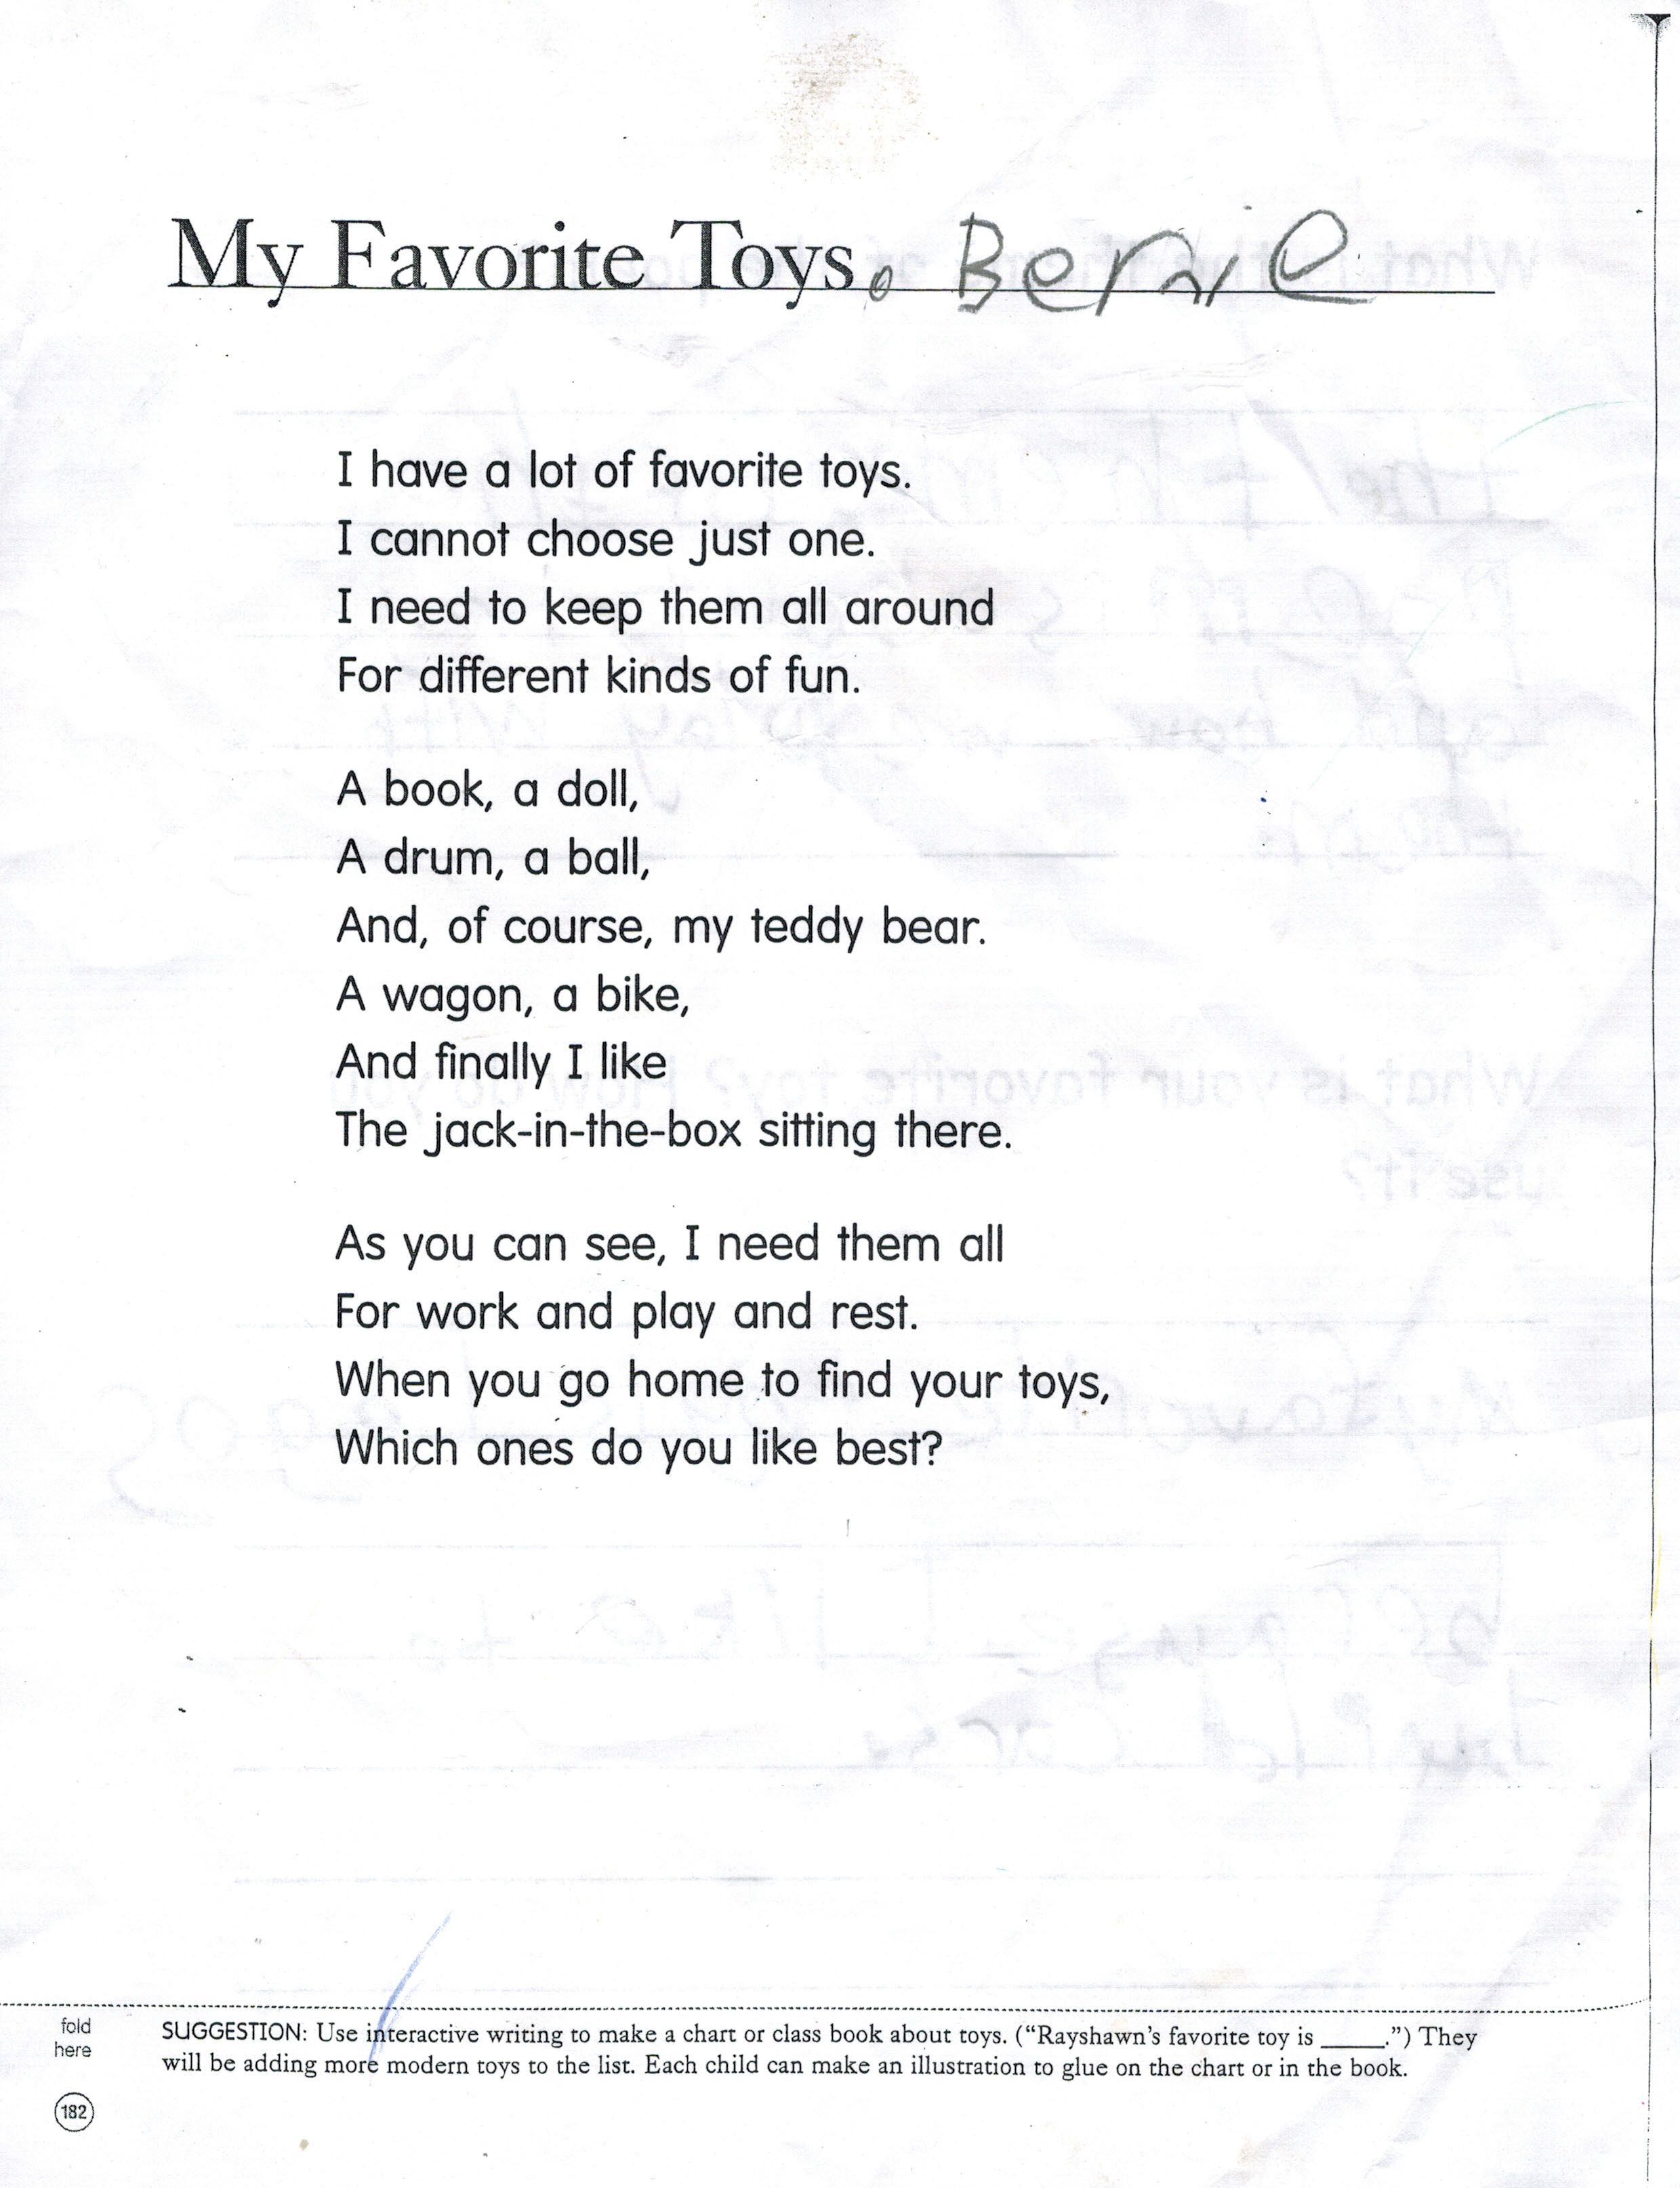 The Favourite Toy Poem That Goes With The Next Pin